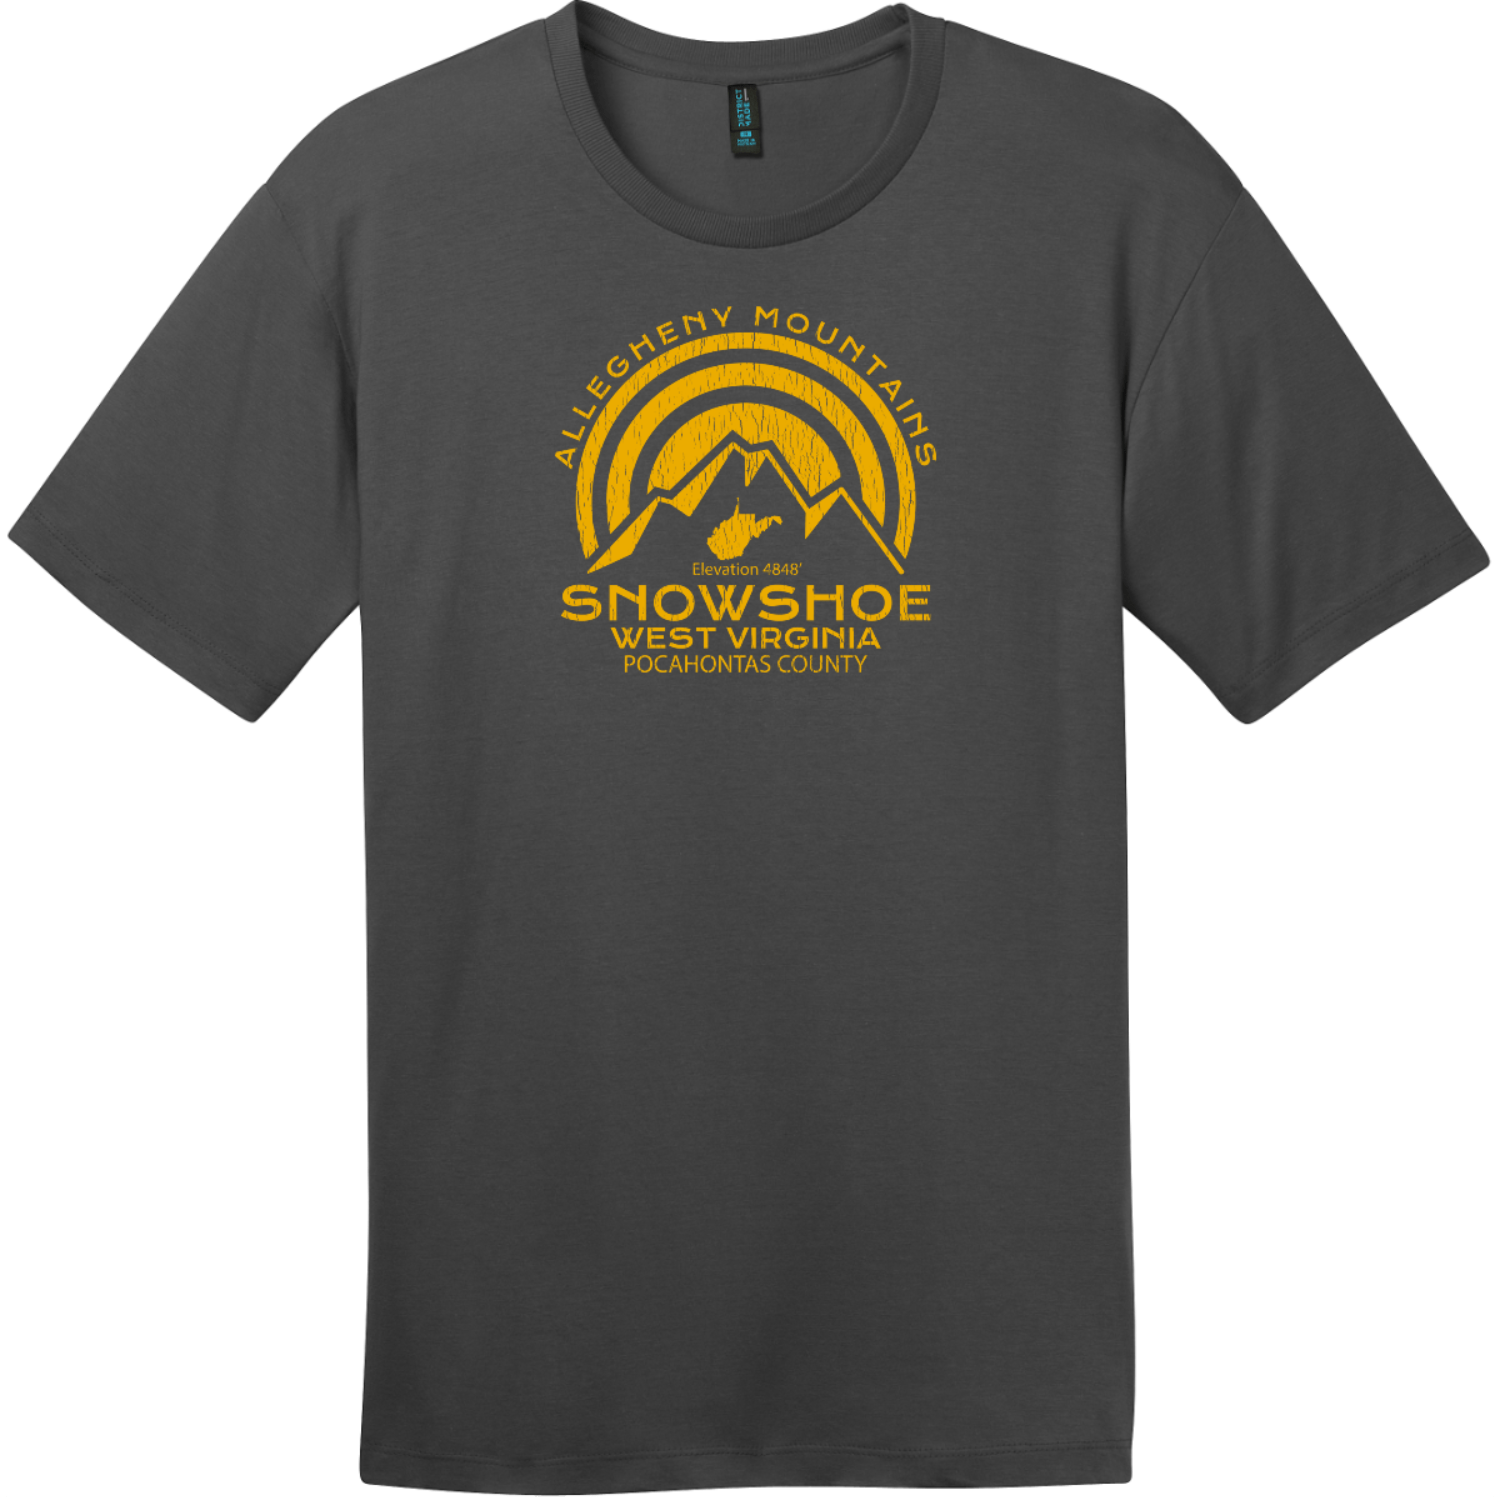 Snowshoe West Virginia Mountain T-Shirt Charcoal District Perfect Weight Tee DT104